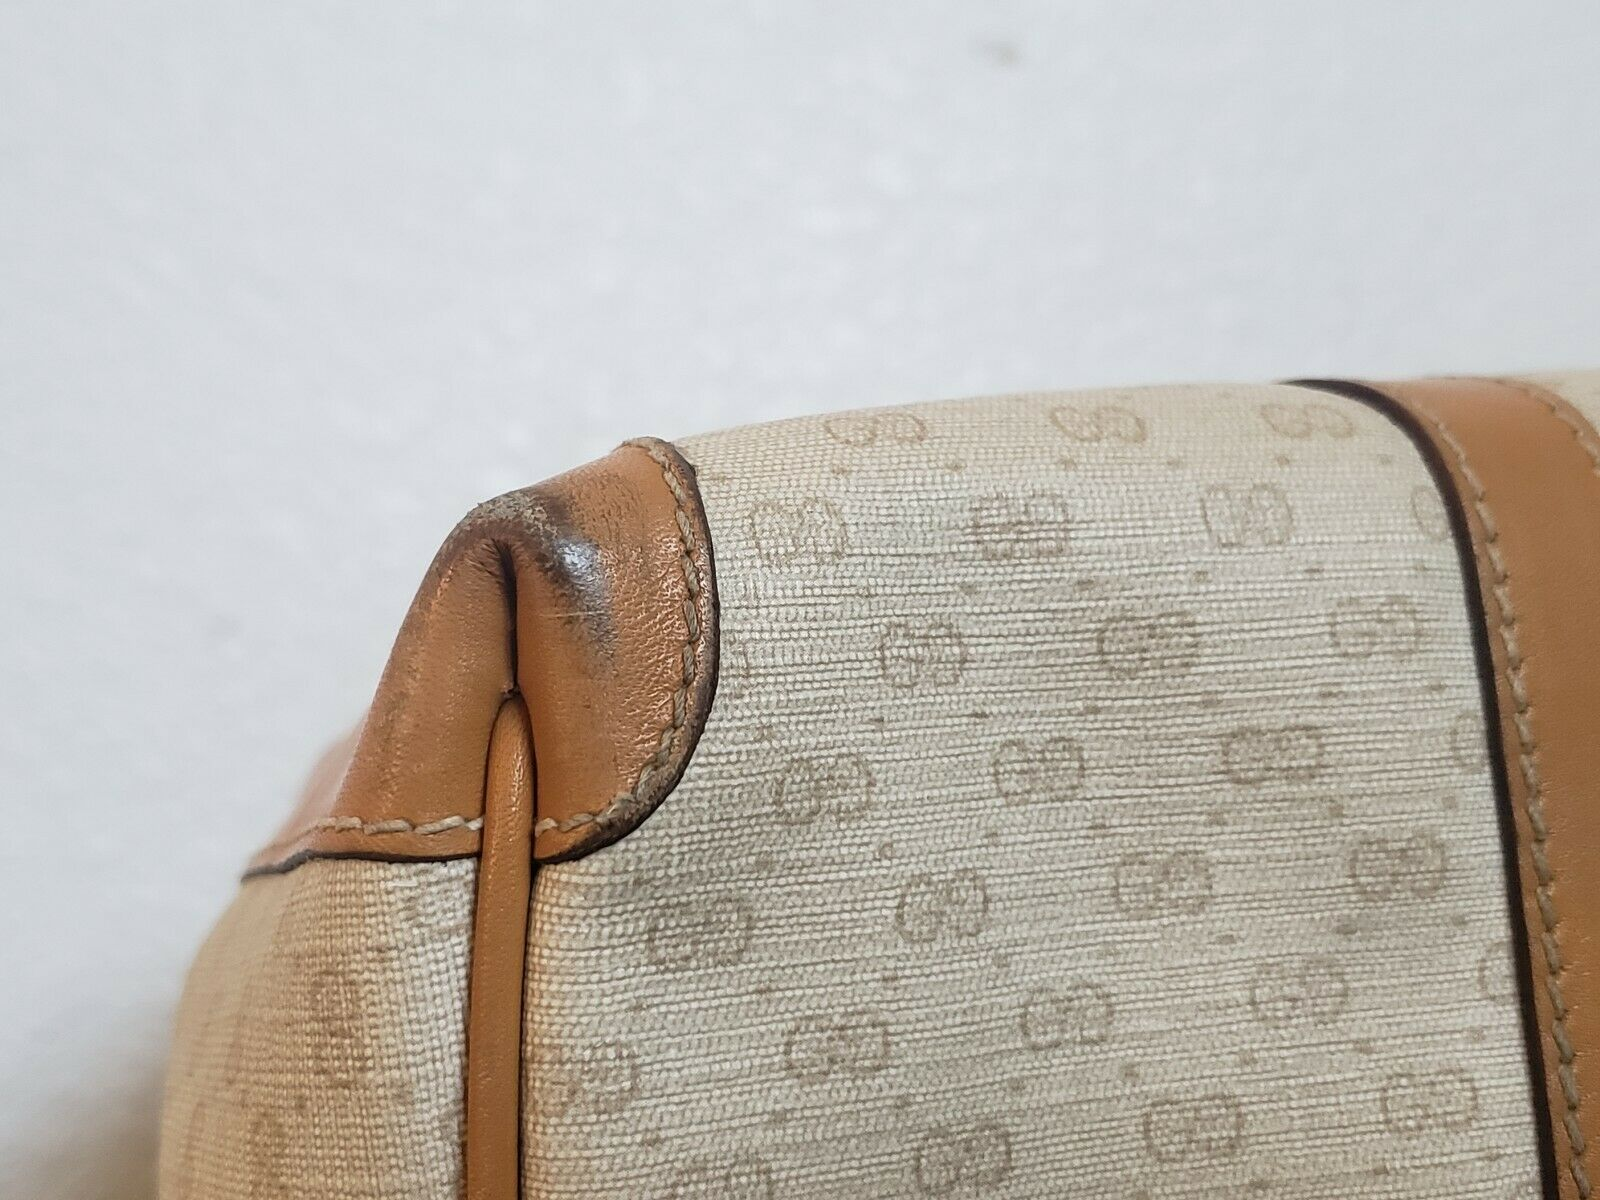 Vtg Gucci Tan GG Monogram Signature Boston Doctor… - image 12